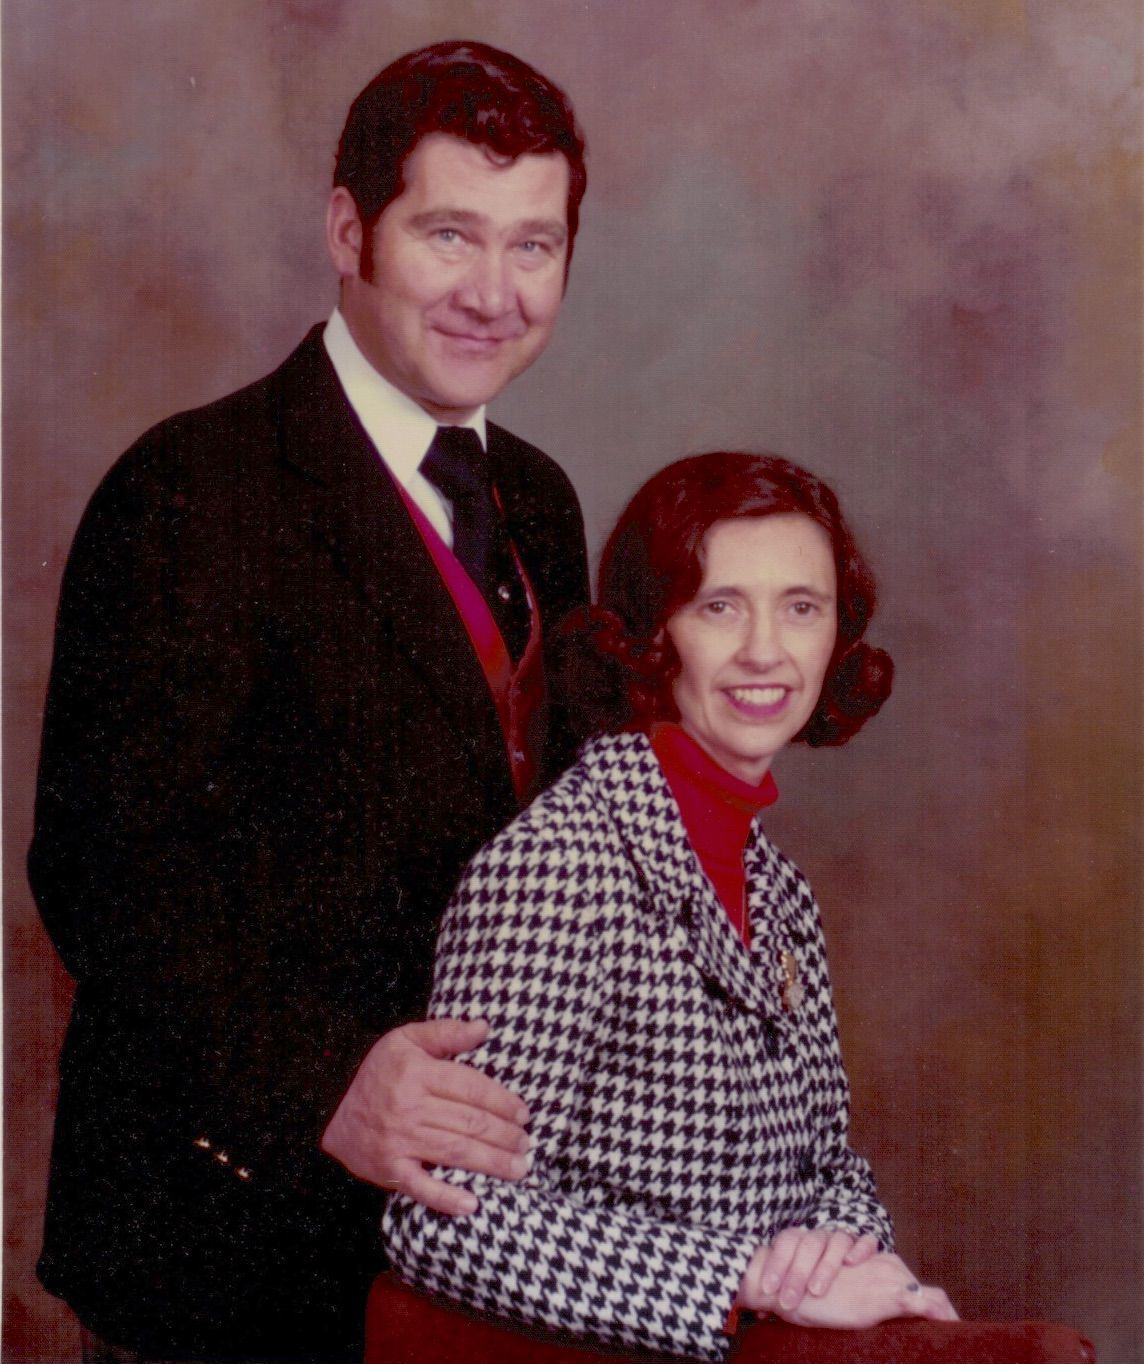 Don and Audrey Bentley